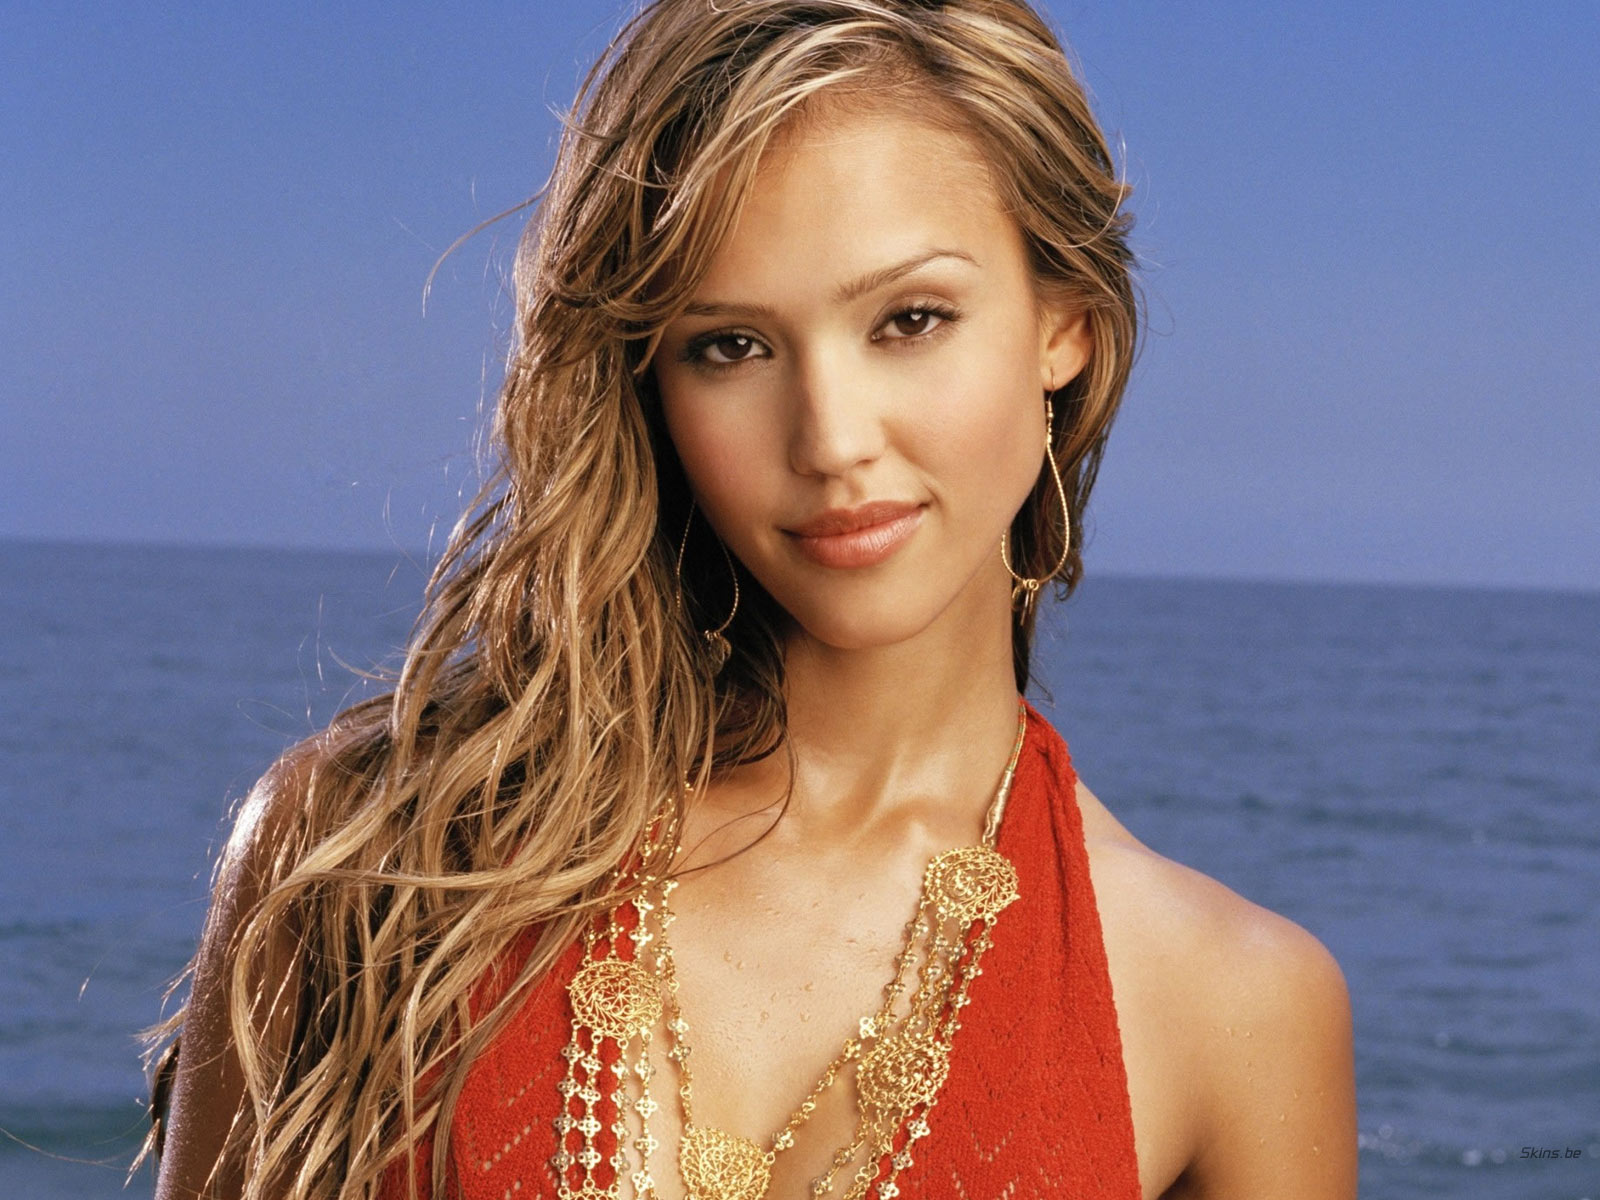 Cong cok hollywood hottie jessica alba hot beach photography for Jessica alba beach pictures